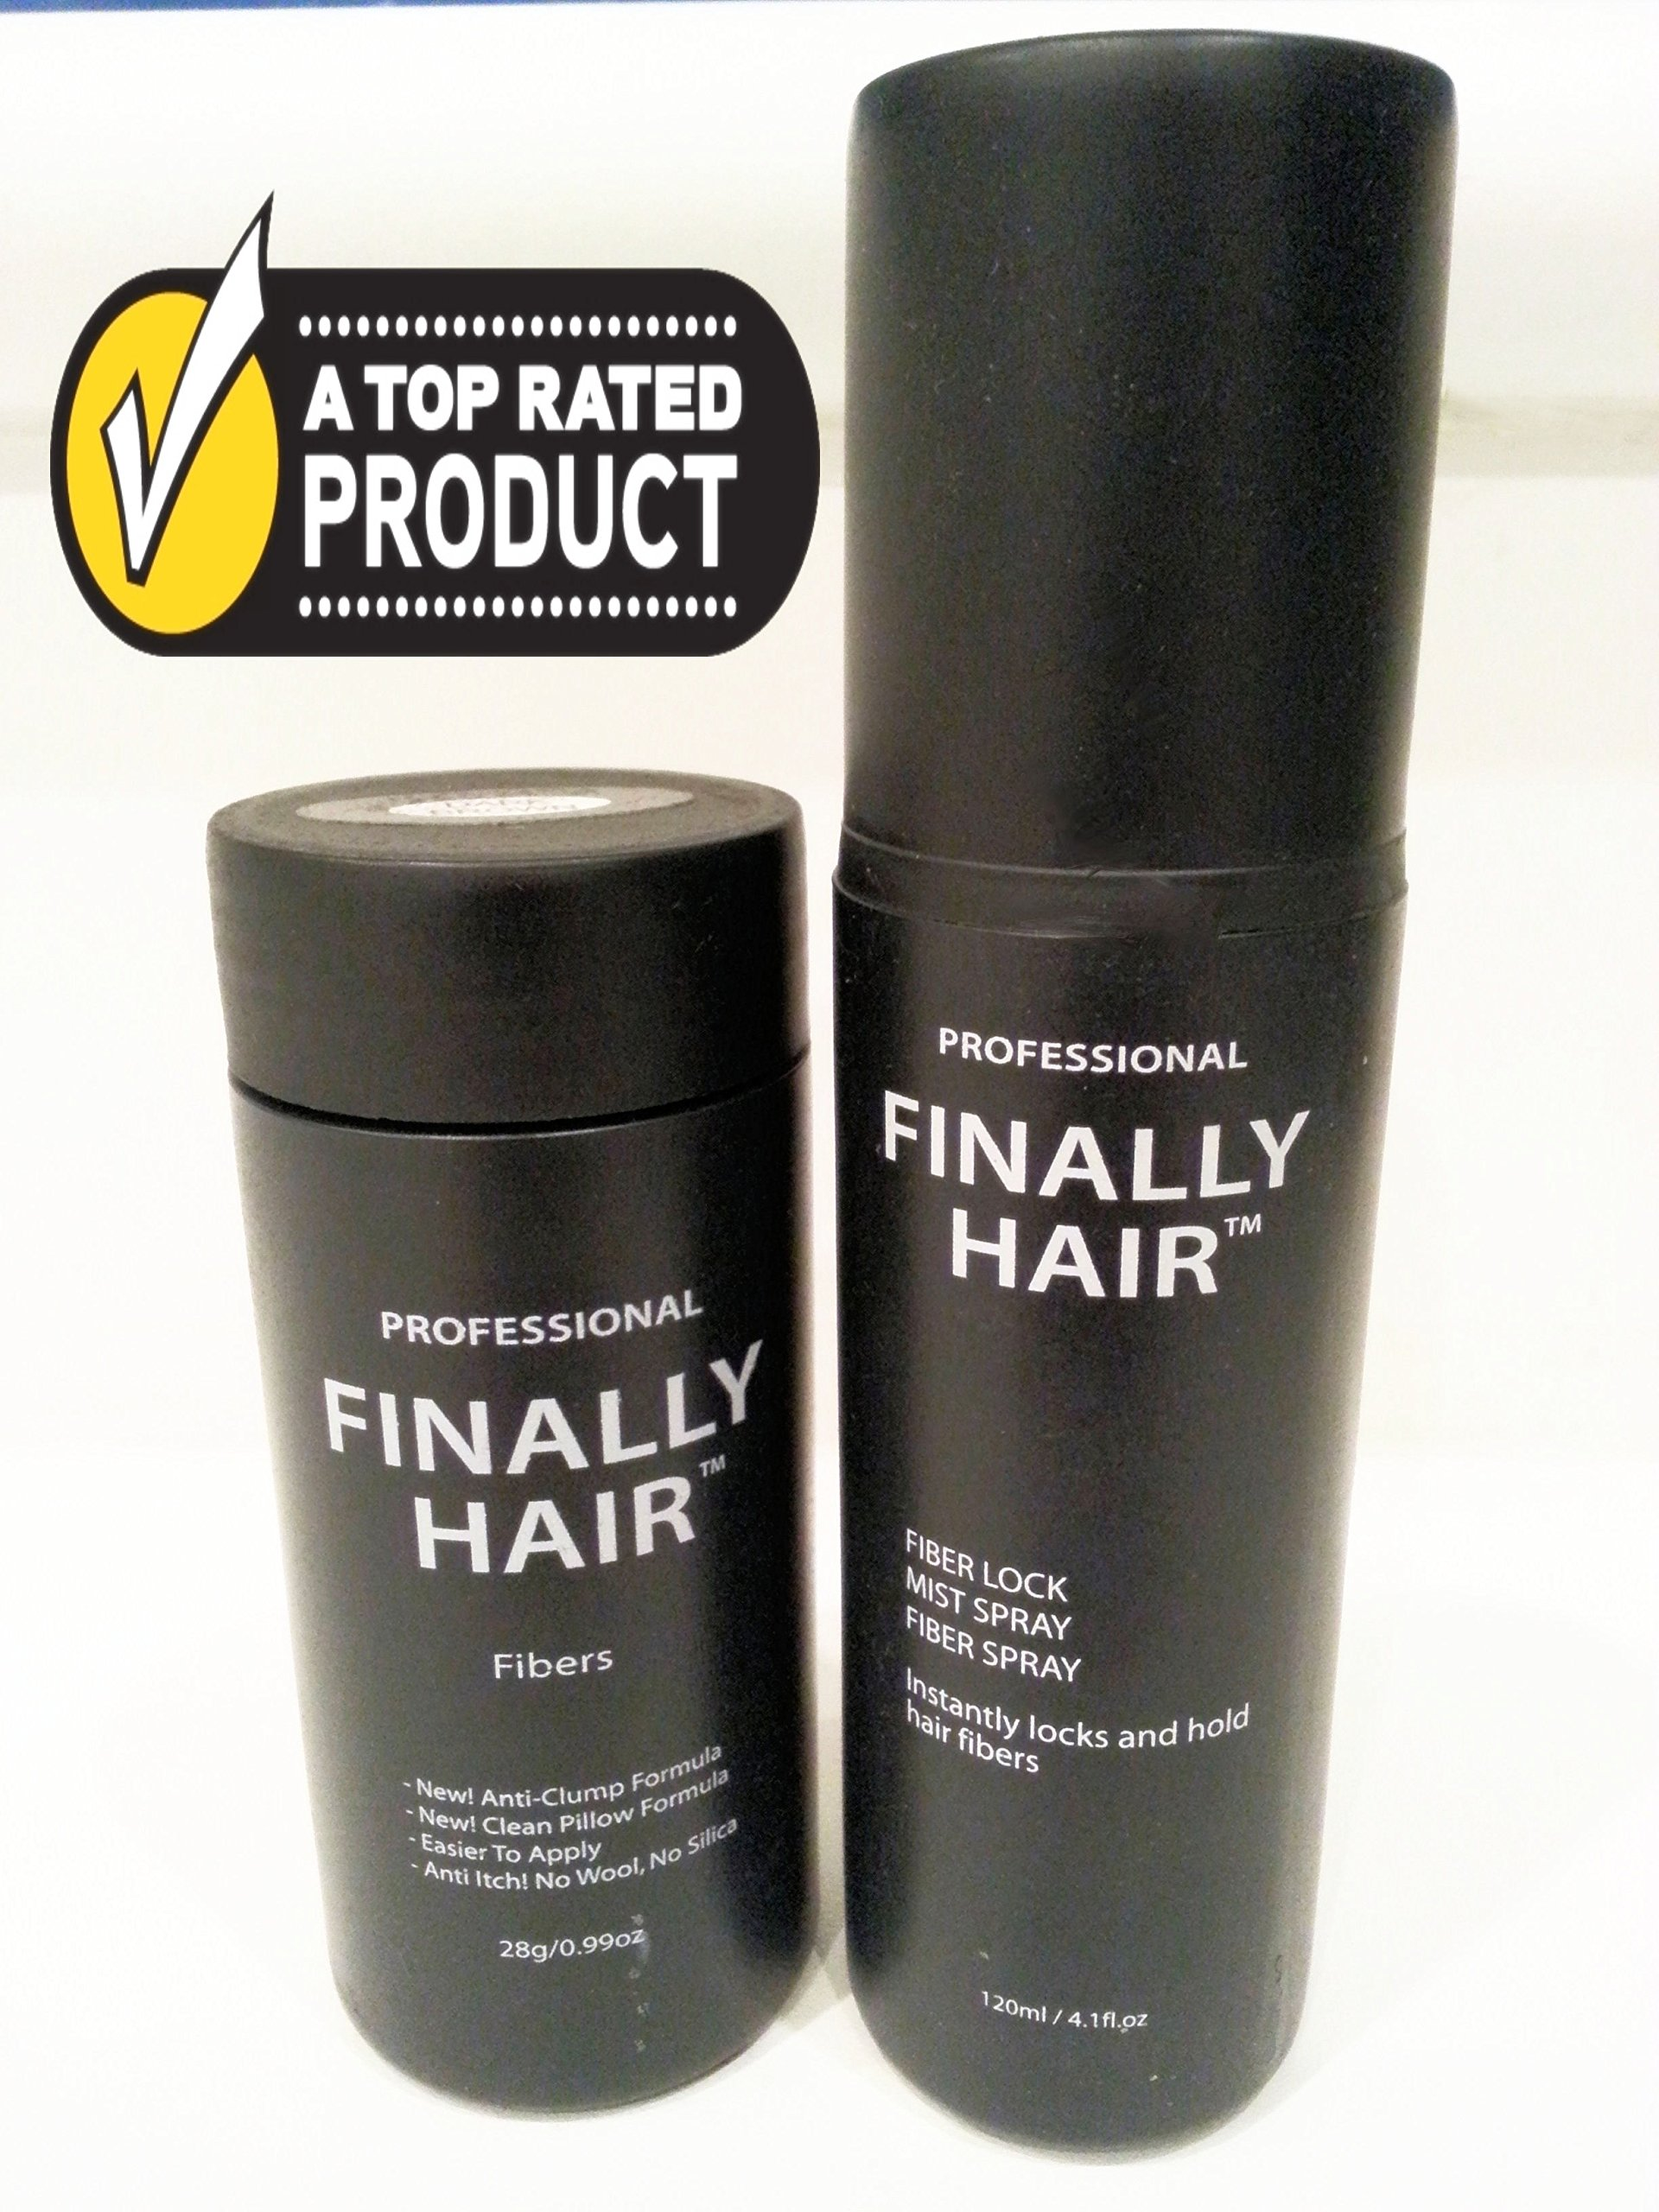 Hair Building Fibers Black 28g Bottle of Finally Hair Building Fibers and Finally Hair 120ml 4.1 oz. Bottle of Fiber Lock Hair Spray. Hair Loss Concealer Fibers (Black)